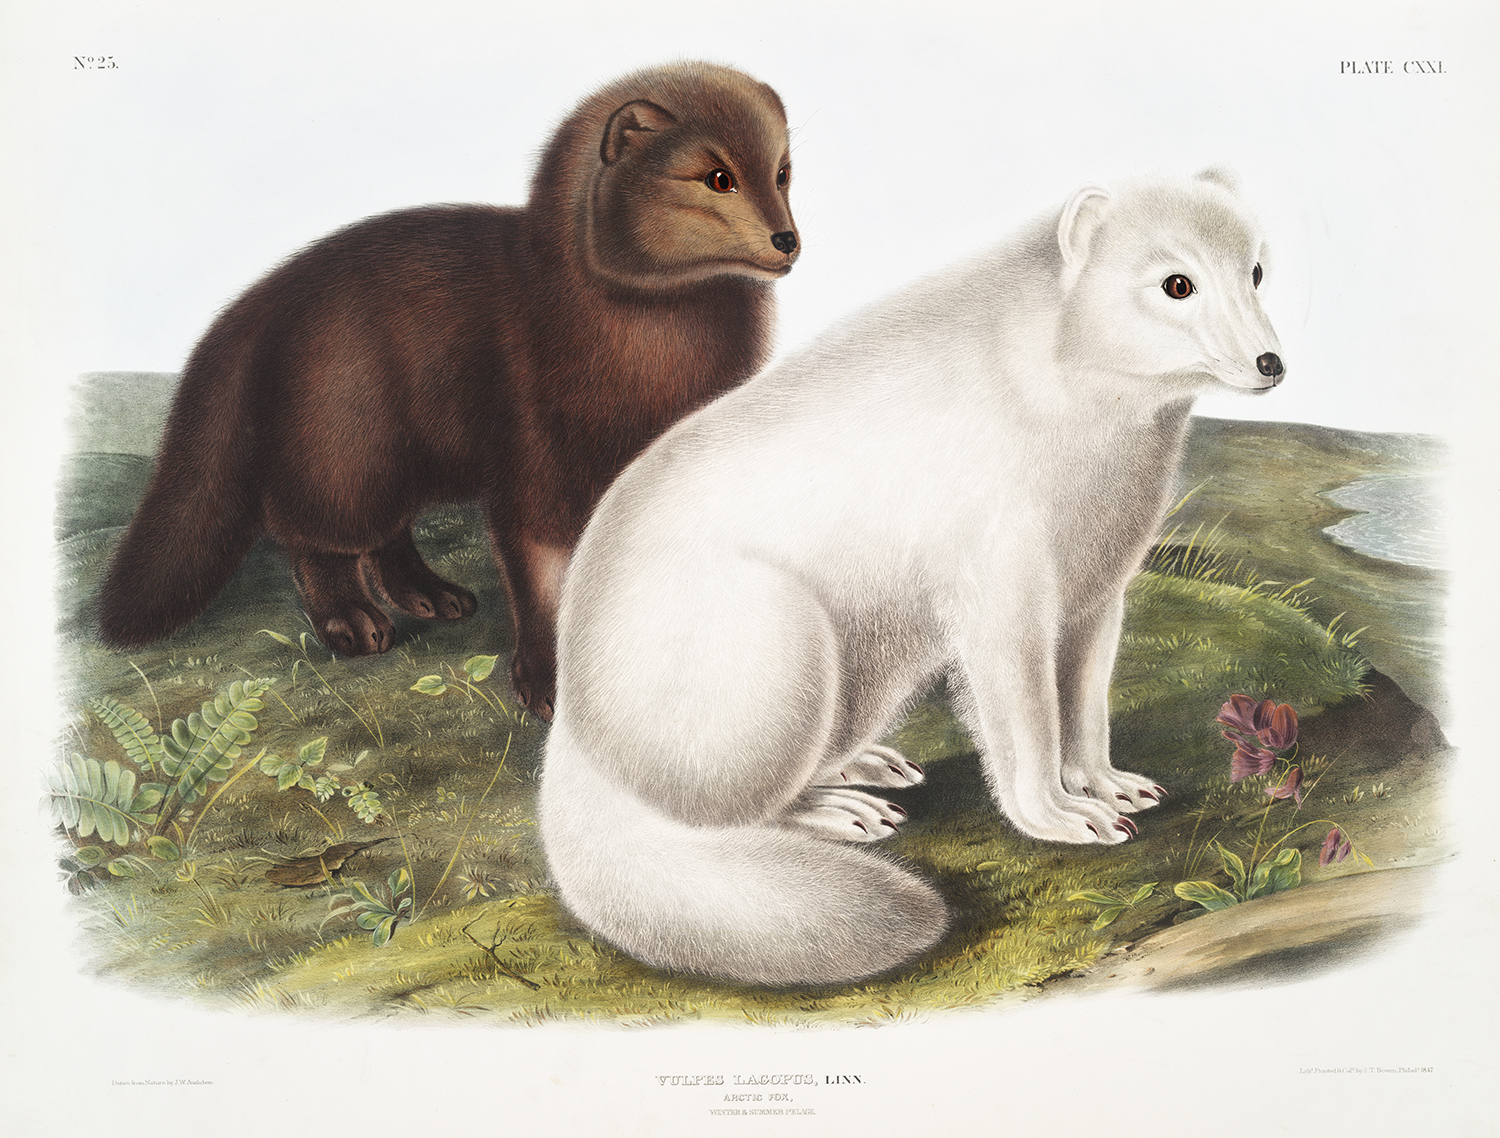 Image from Audubon's Viviparous Quadripeds depicting a brown arctic fox and a white arctic fox side by side.